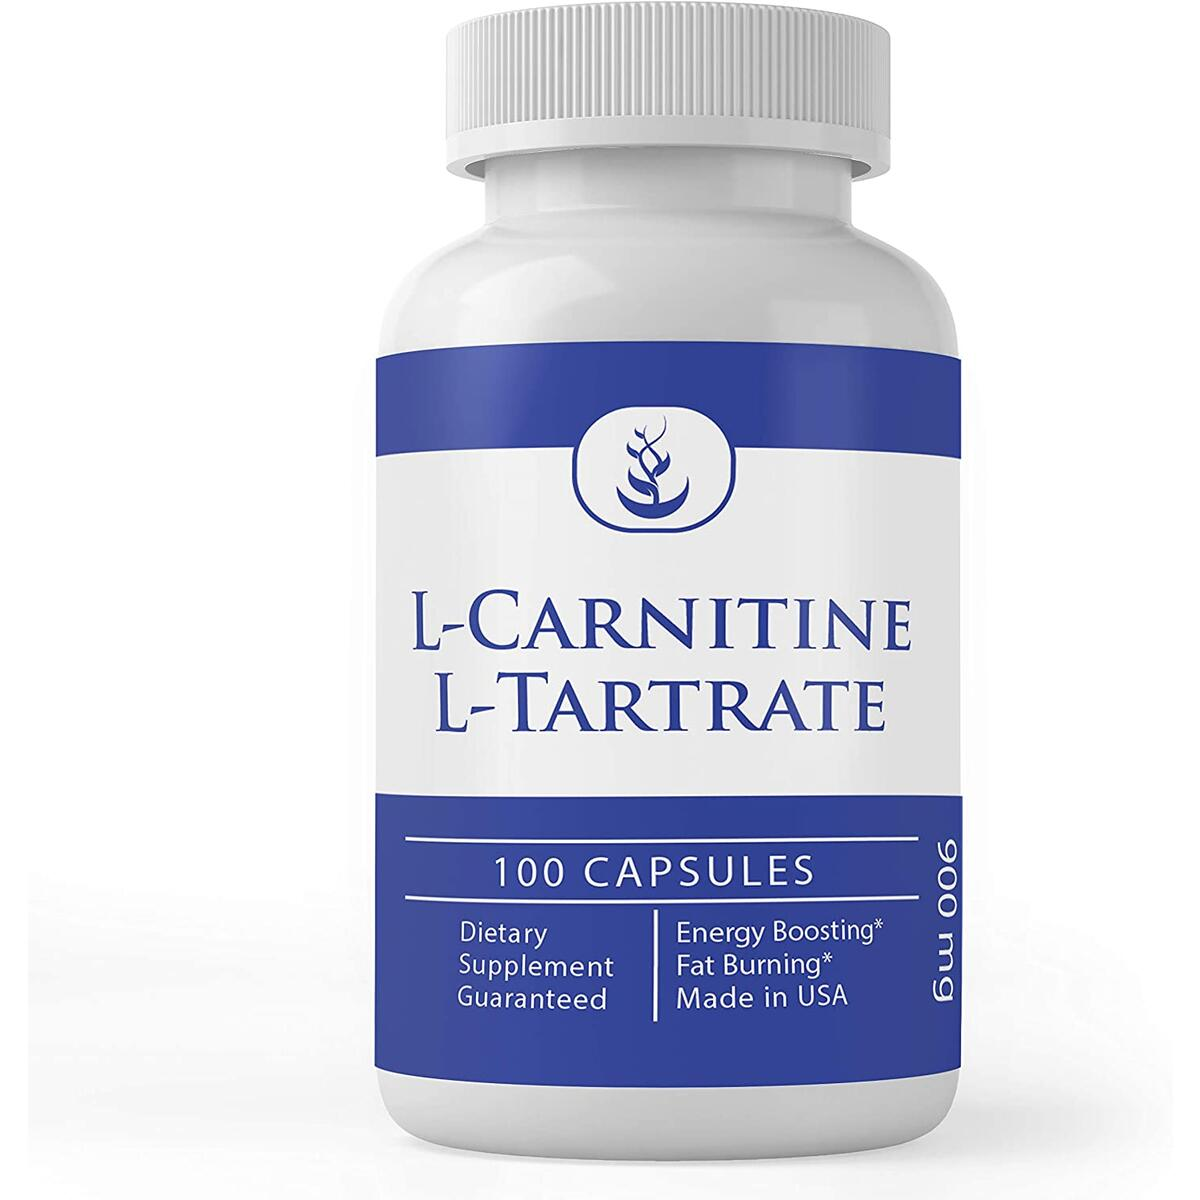 L-Carnitine Tartrate, 100 Capsules, 900 mg Serving, No Magnesium or Rice Fillers, No Additives, Gluten-Free, Potent, Undiluted, High Quality, Made in The USA